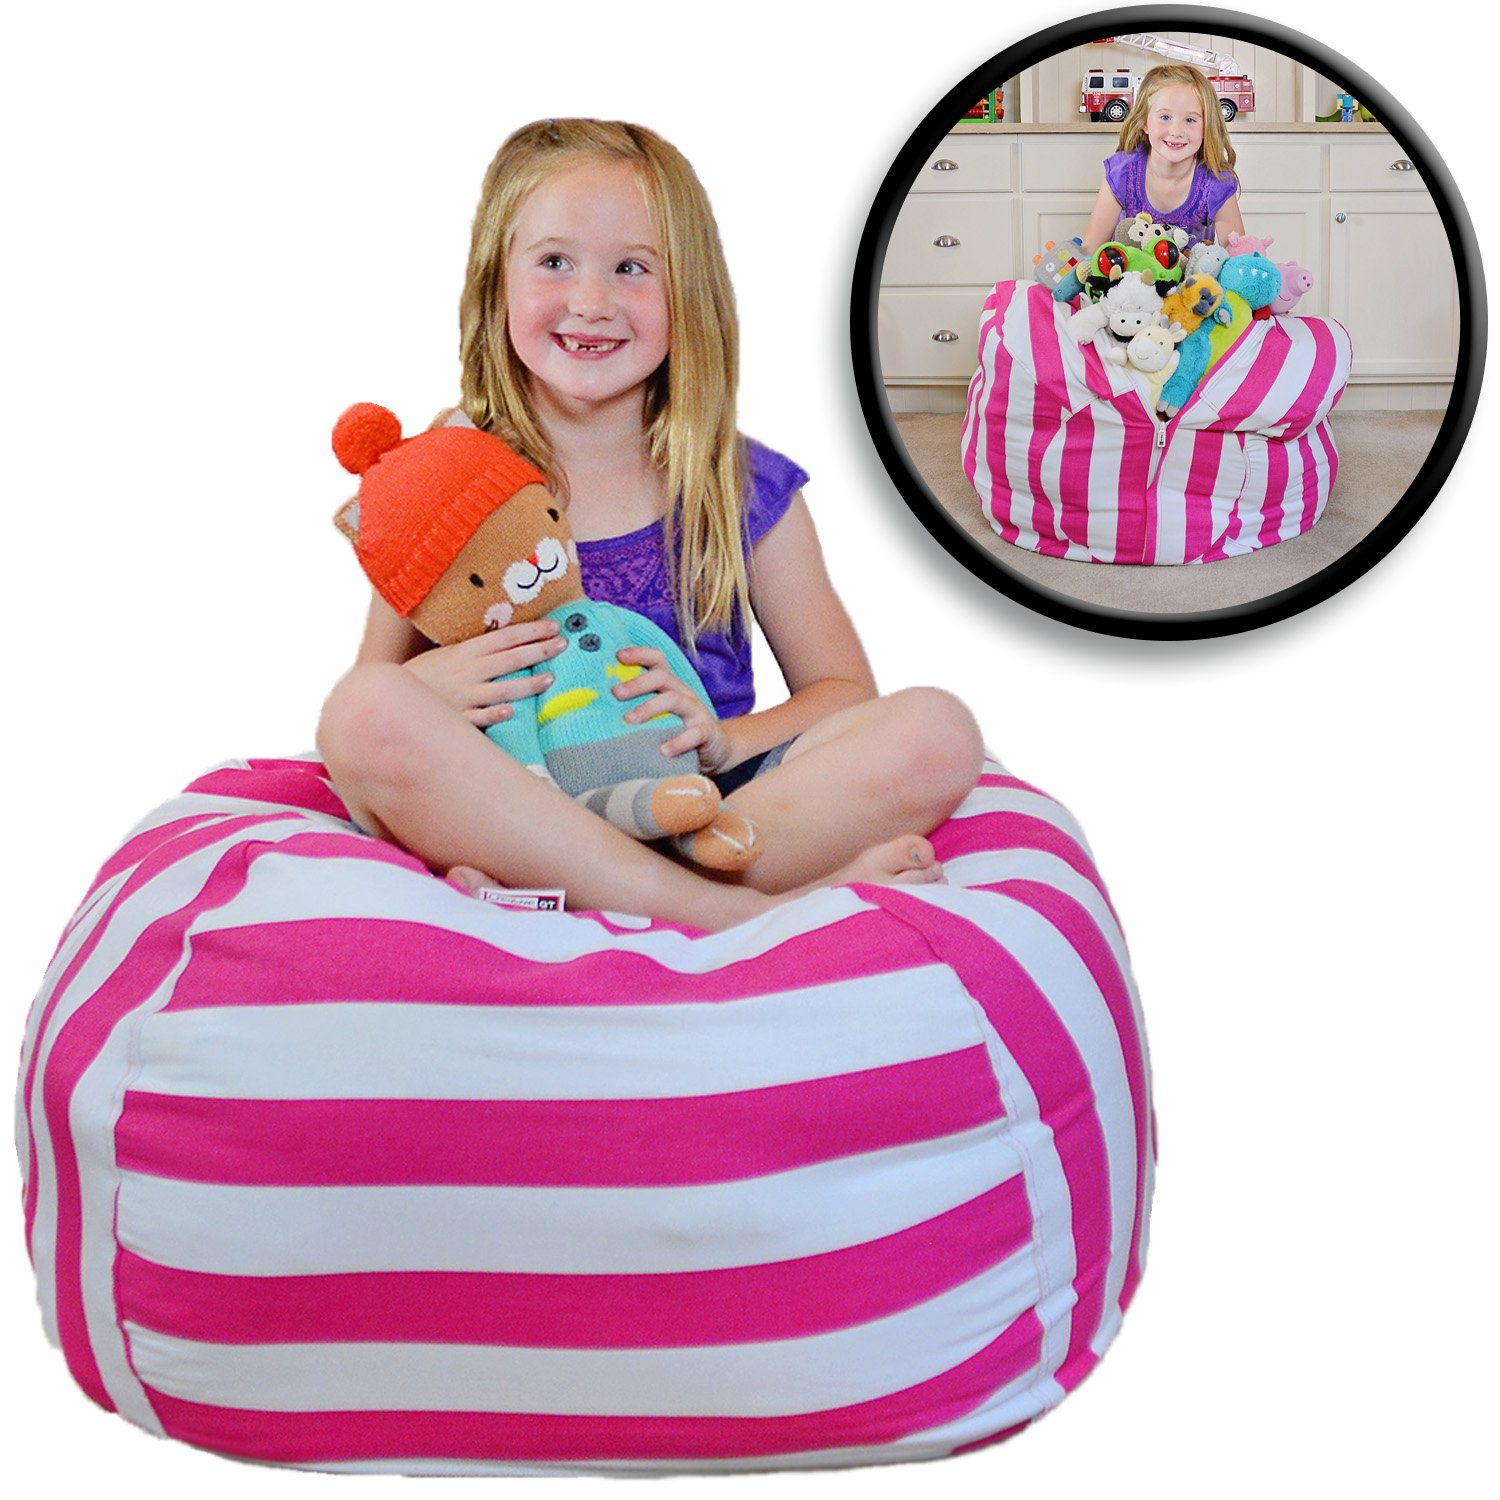 "Extra Large - Stuffed Animal Storage Bean Bag Chair - Premium Cotton Canvas - Clean Up The Room And Put Those Critters To Work For You! - By Creative Qt (38"", Pink Stripe)"